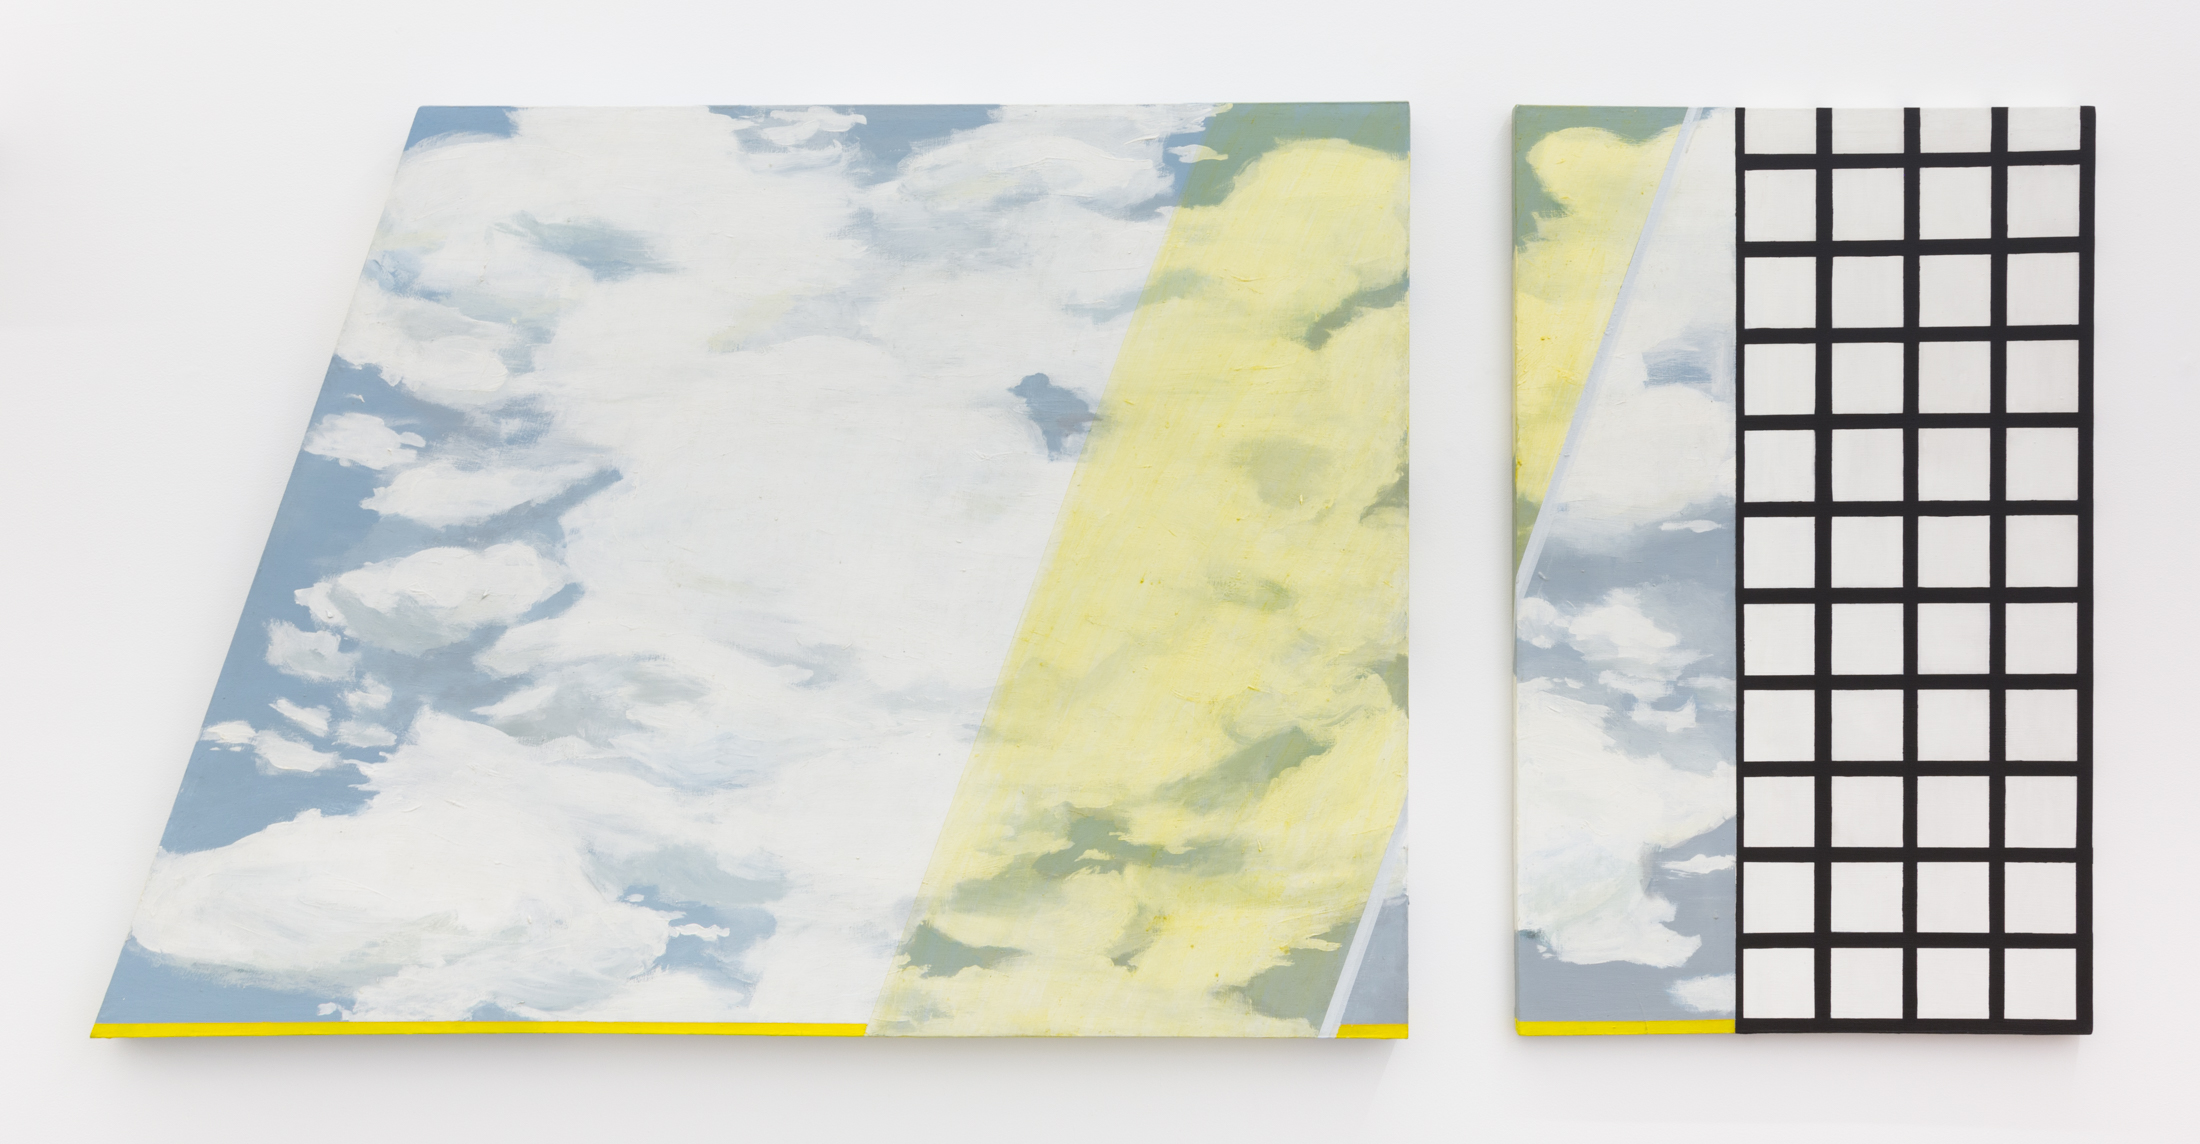 Yellow Filter: Diptych, 1966. Acrylic on shaped canvas, 45.25 x 98.4 inches. Courtesy of Jessica Silverman Gallery.